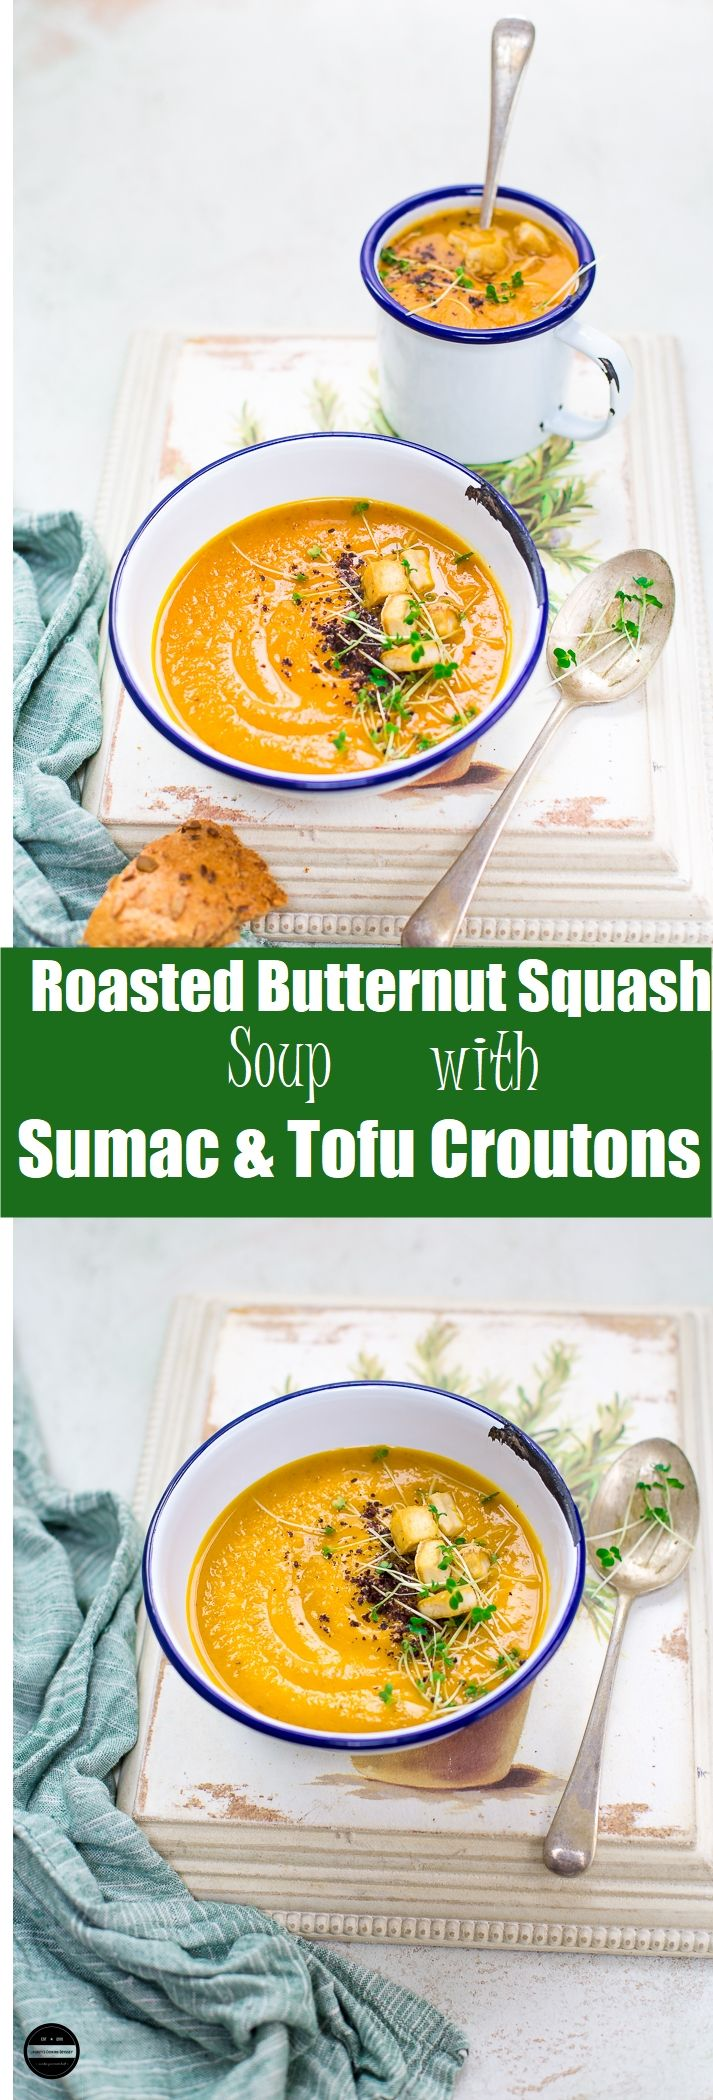 Vegan Roasted Butternut Squash Soup with Sumac and Tofu Croutons.